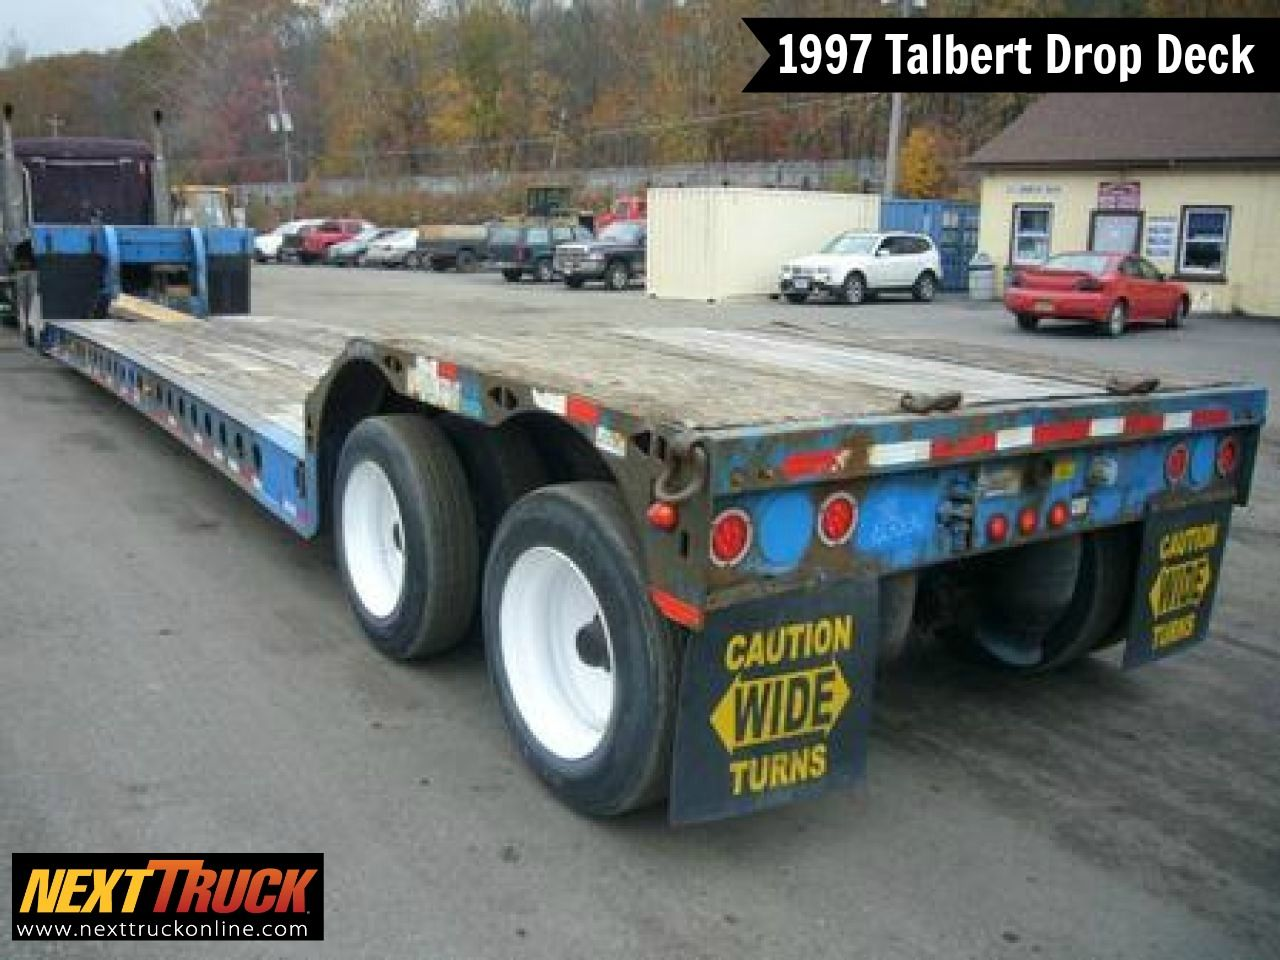 Our Featured Trailer Is A 1997 Talbert Drop Deck Trailer Wood Floor 2 Axles 102 Wide All Steel Wheels Check Out T Trailers For Sale Trailer Cool Trucks